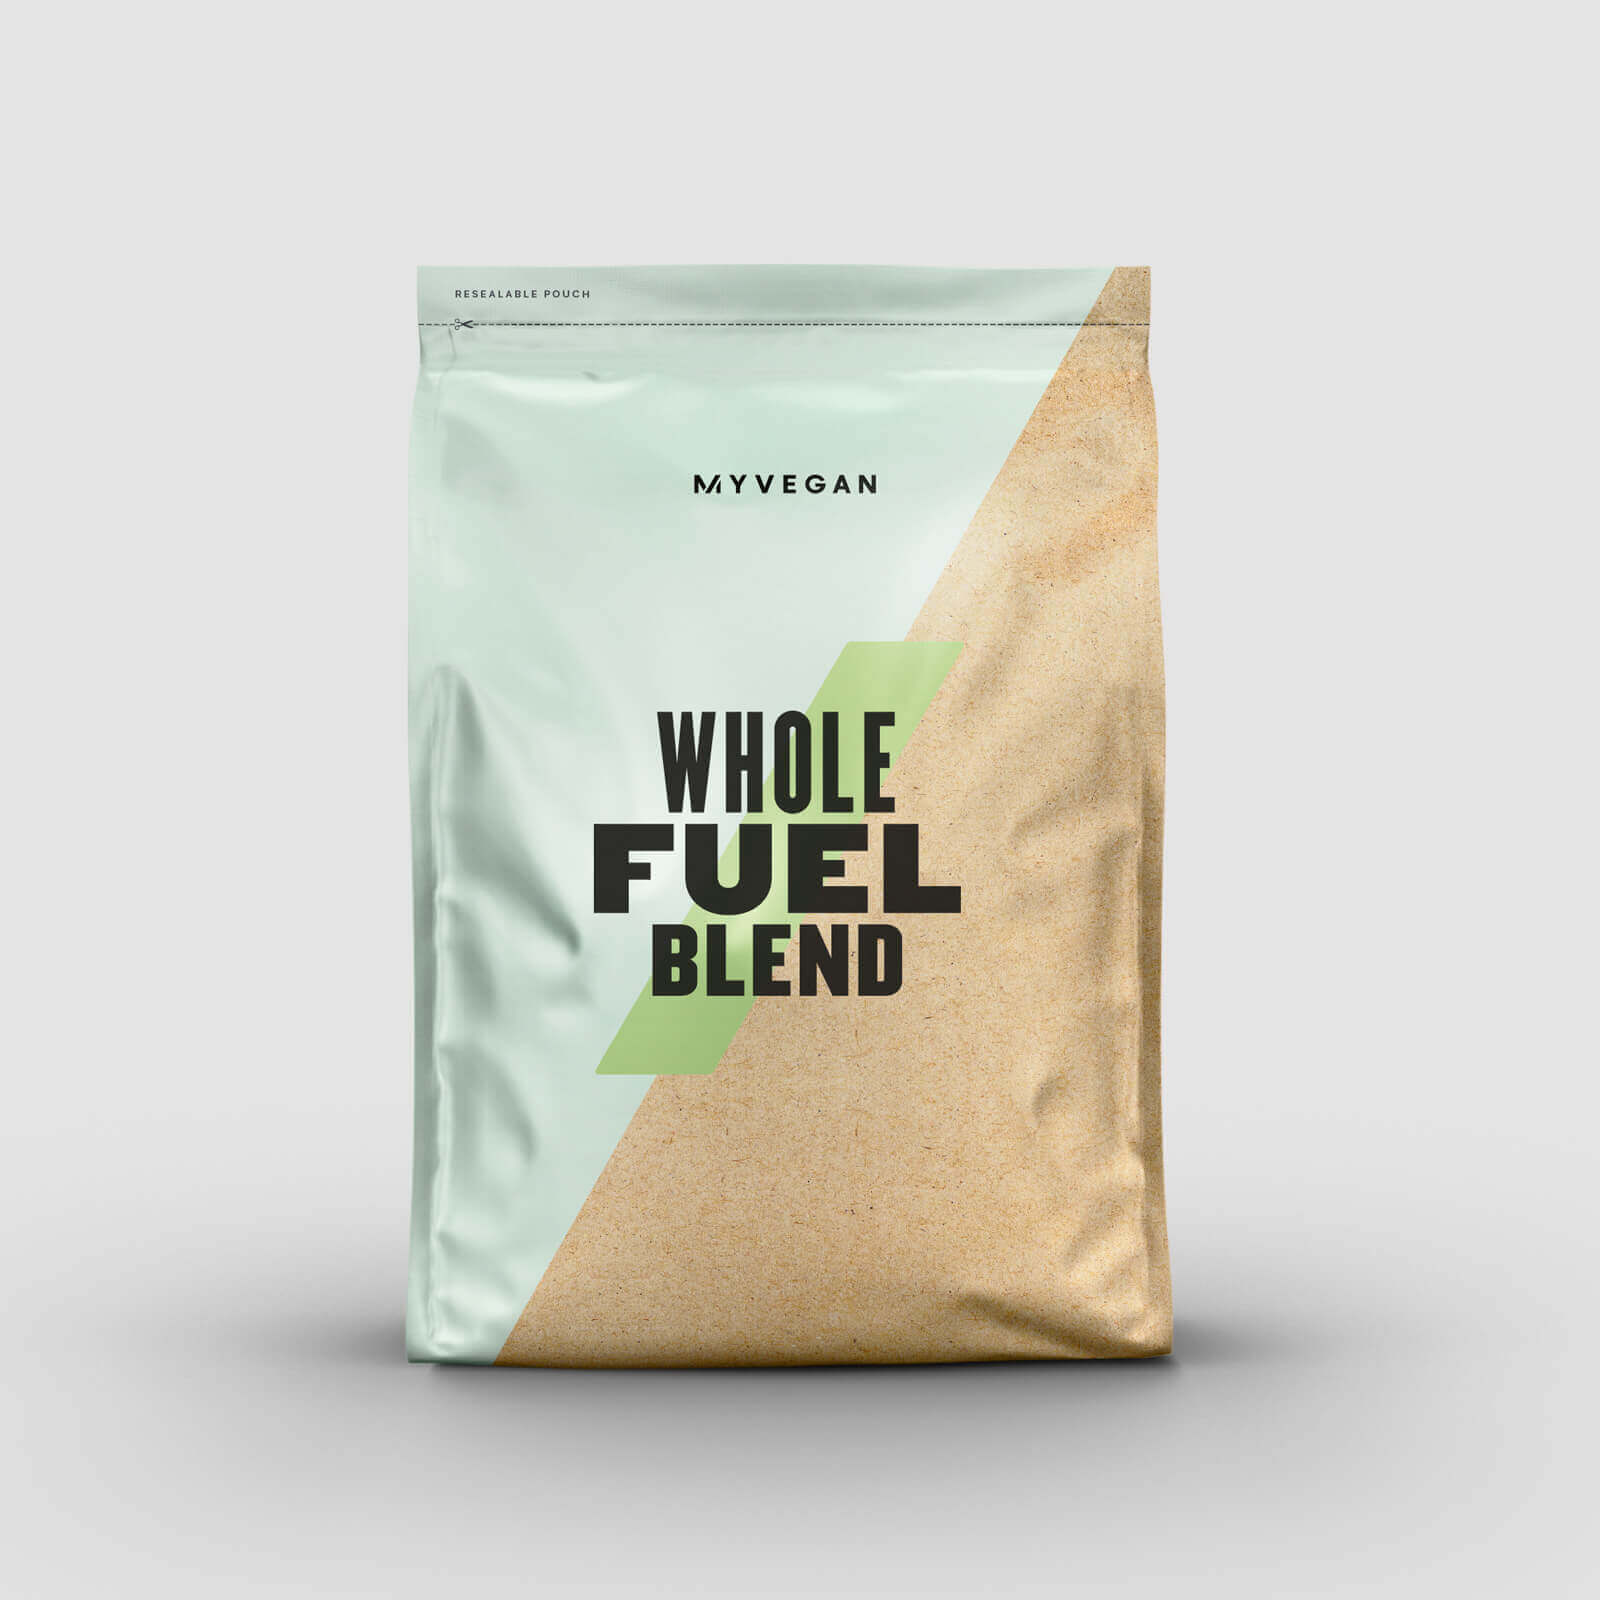 Whole Fuel Blend product image